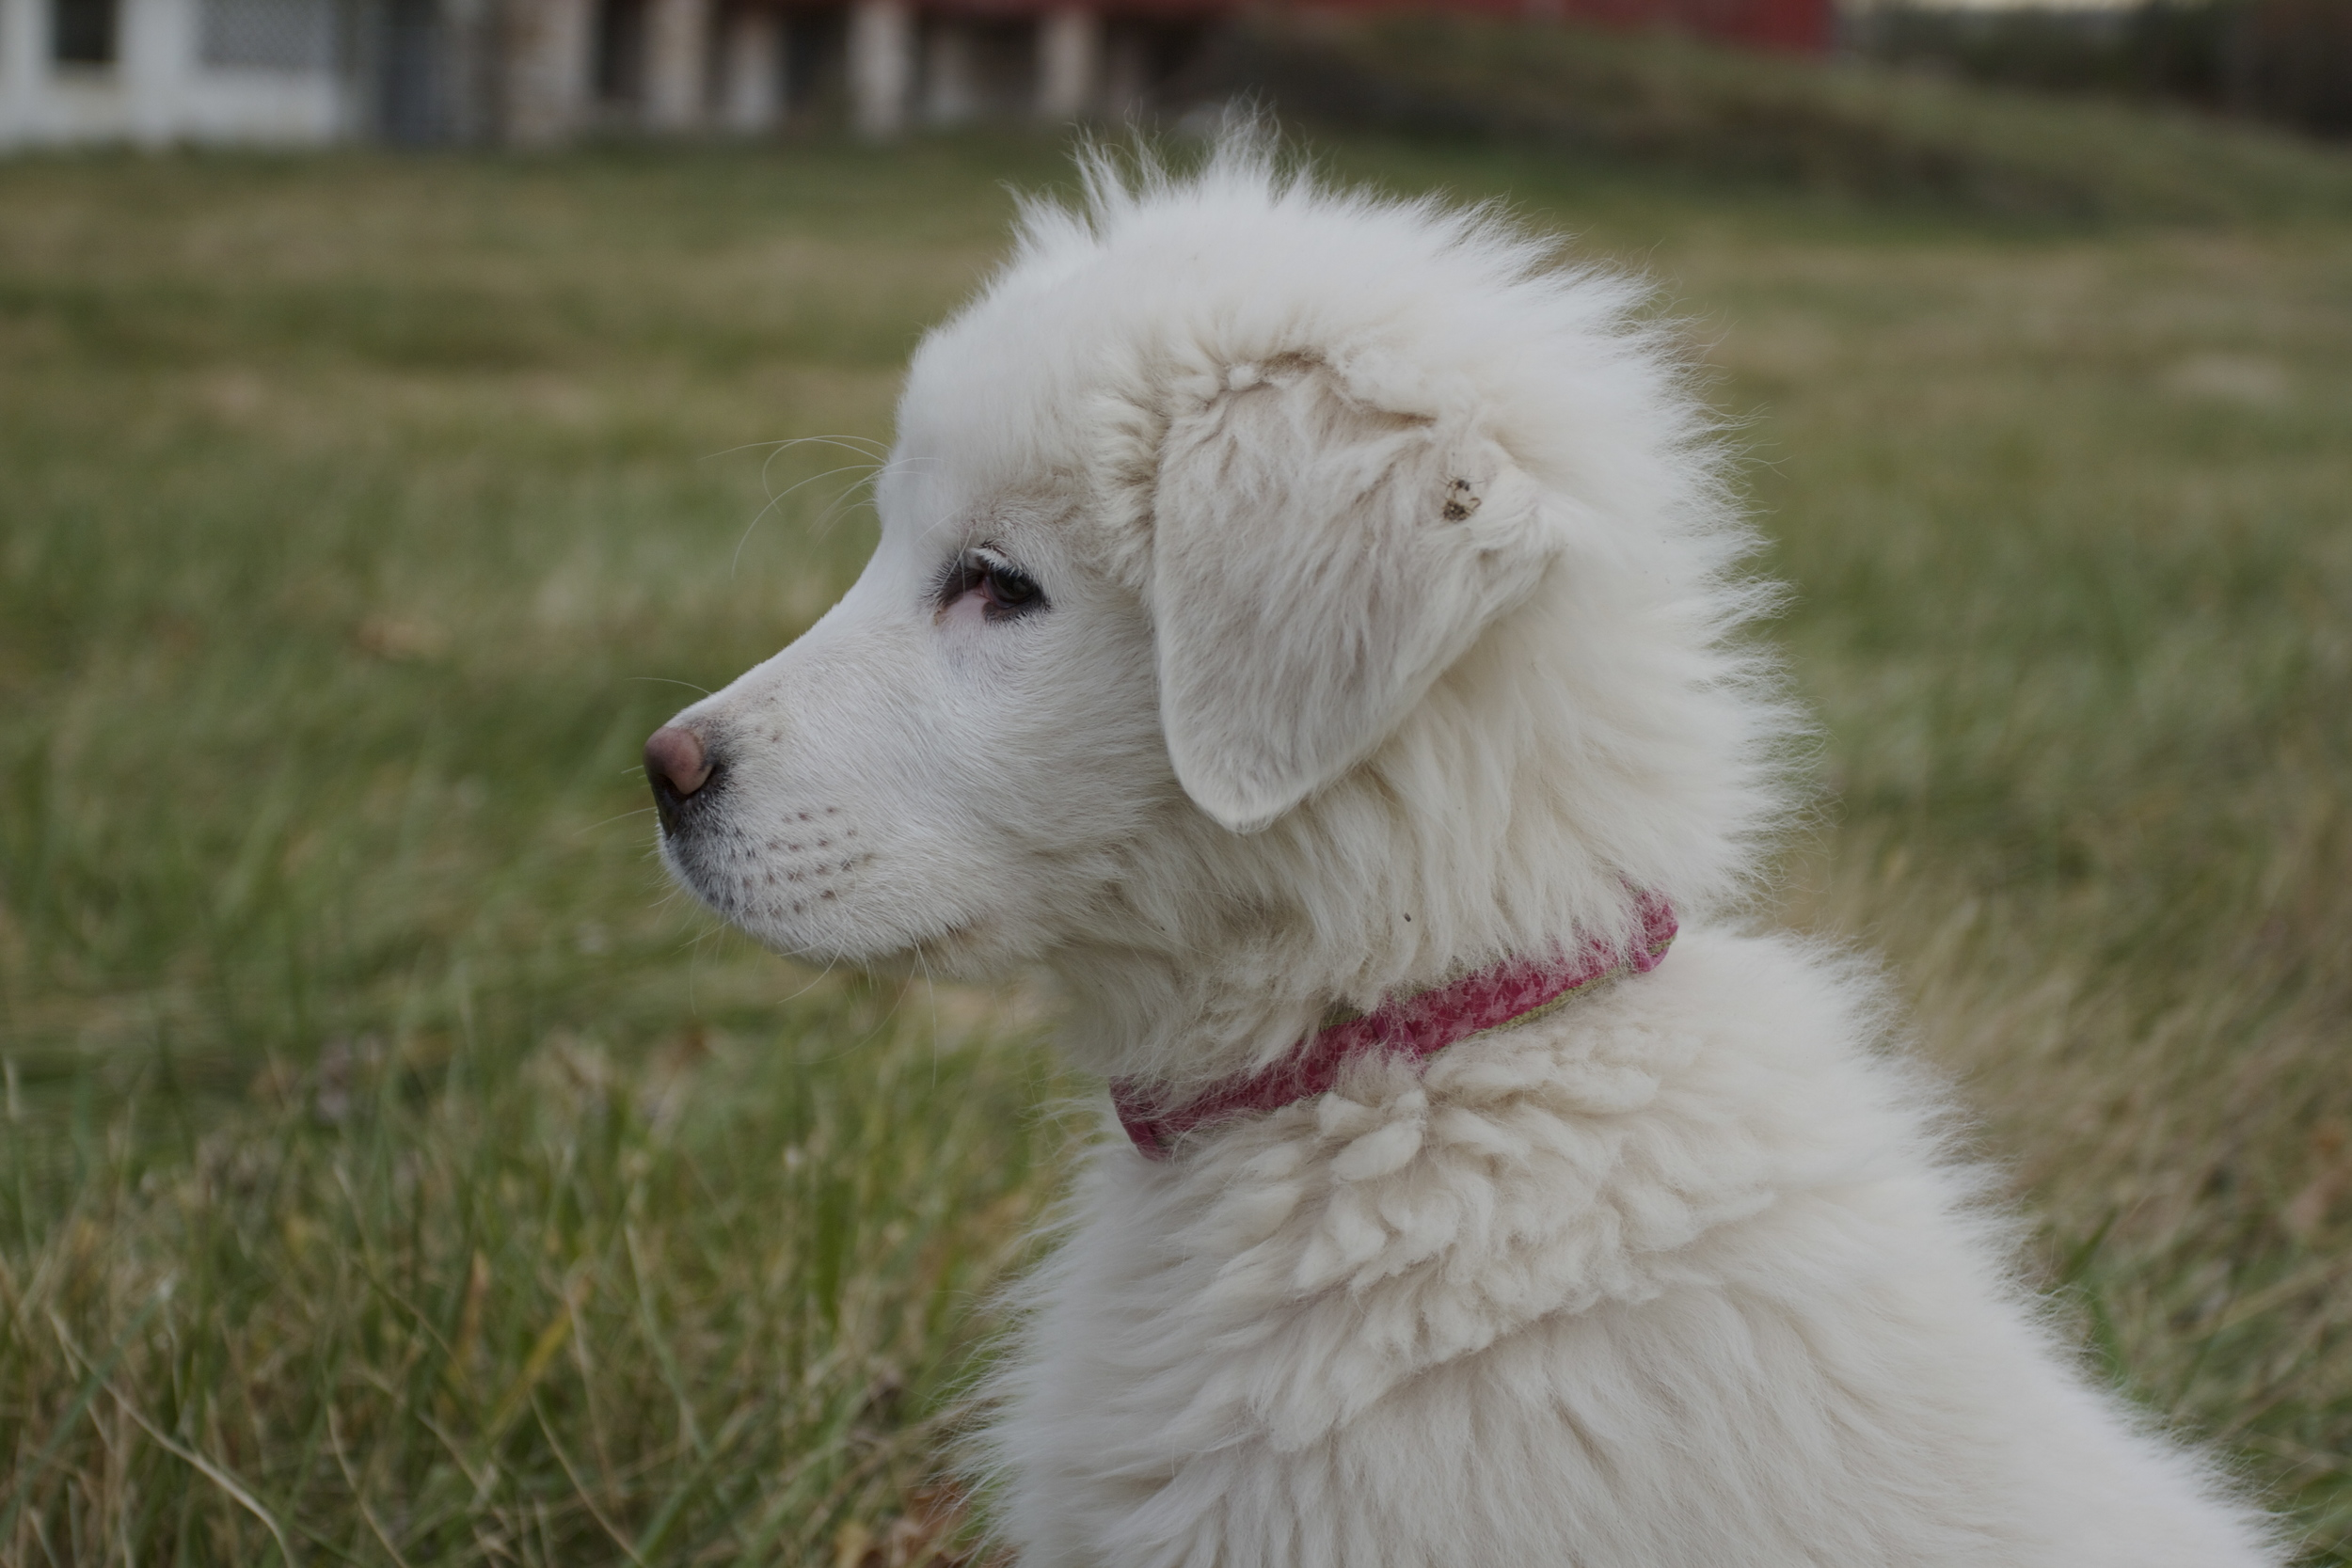 Belle -- She is a smart, intense, protective pup who is always one step ahead of us